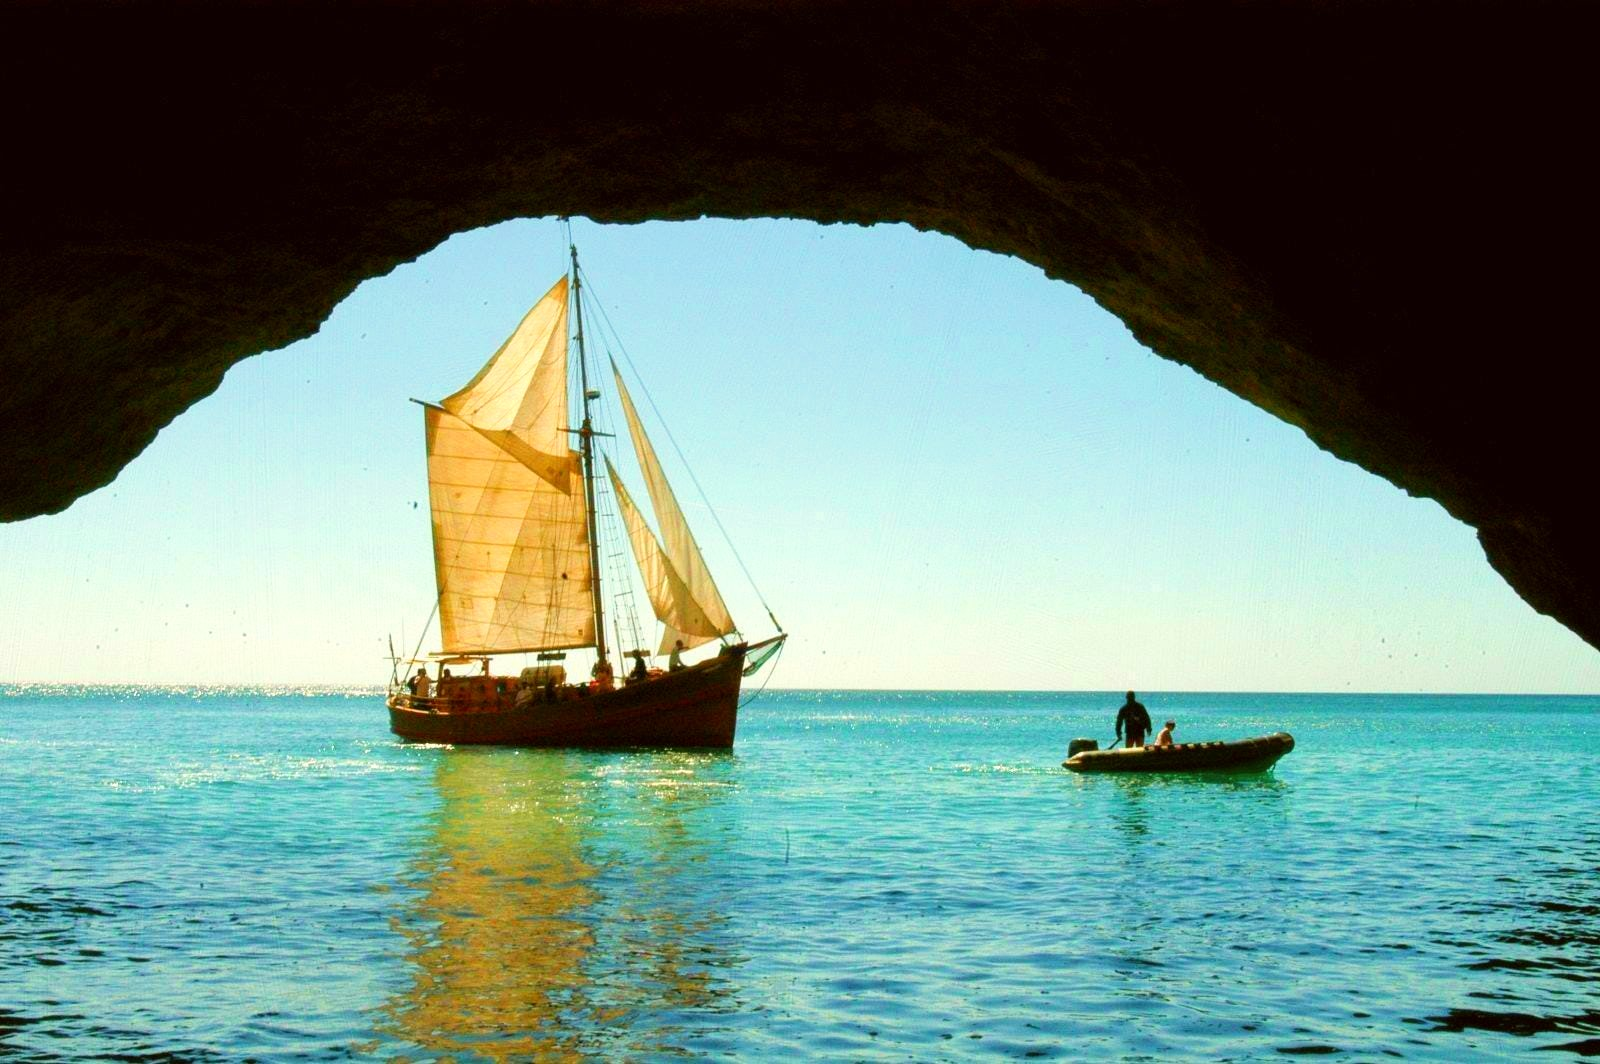 A boat that makes a boat tour in the Algarve can be admired from a cave.